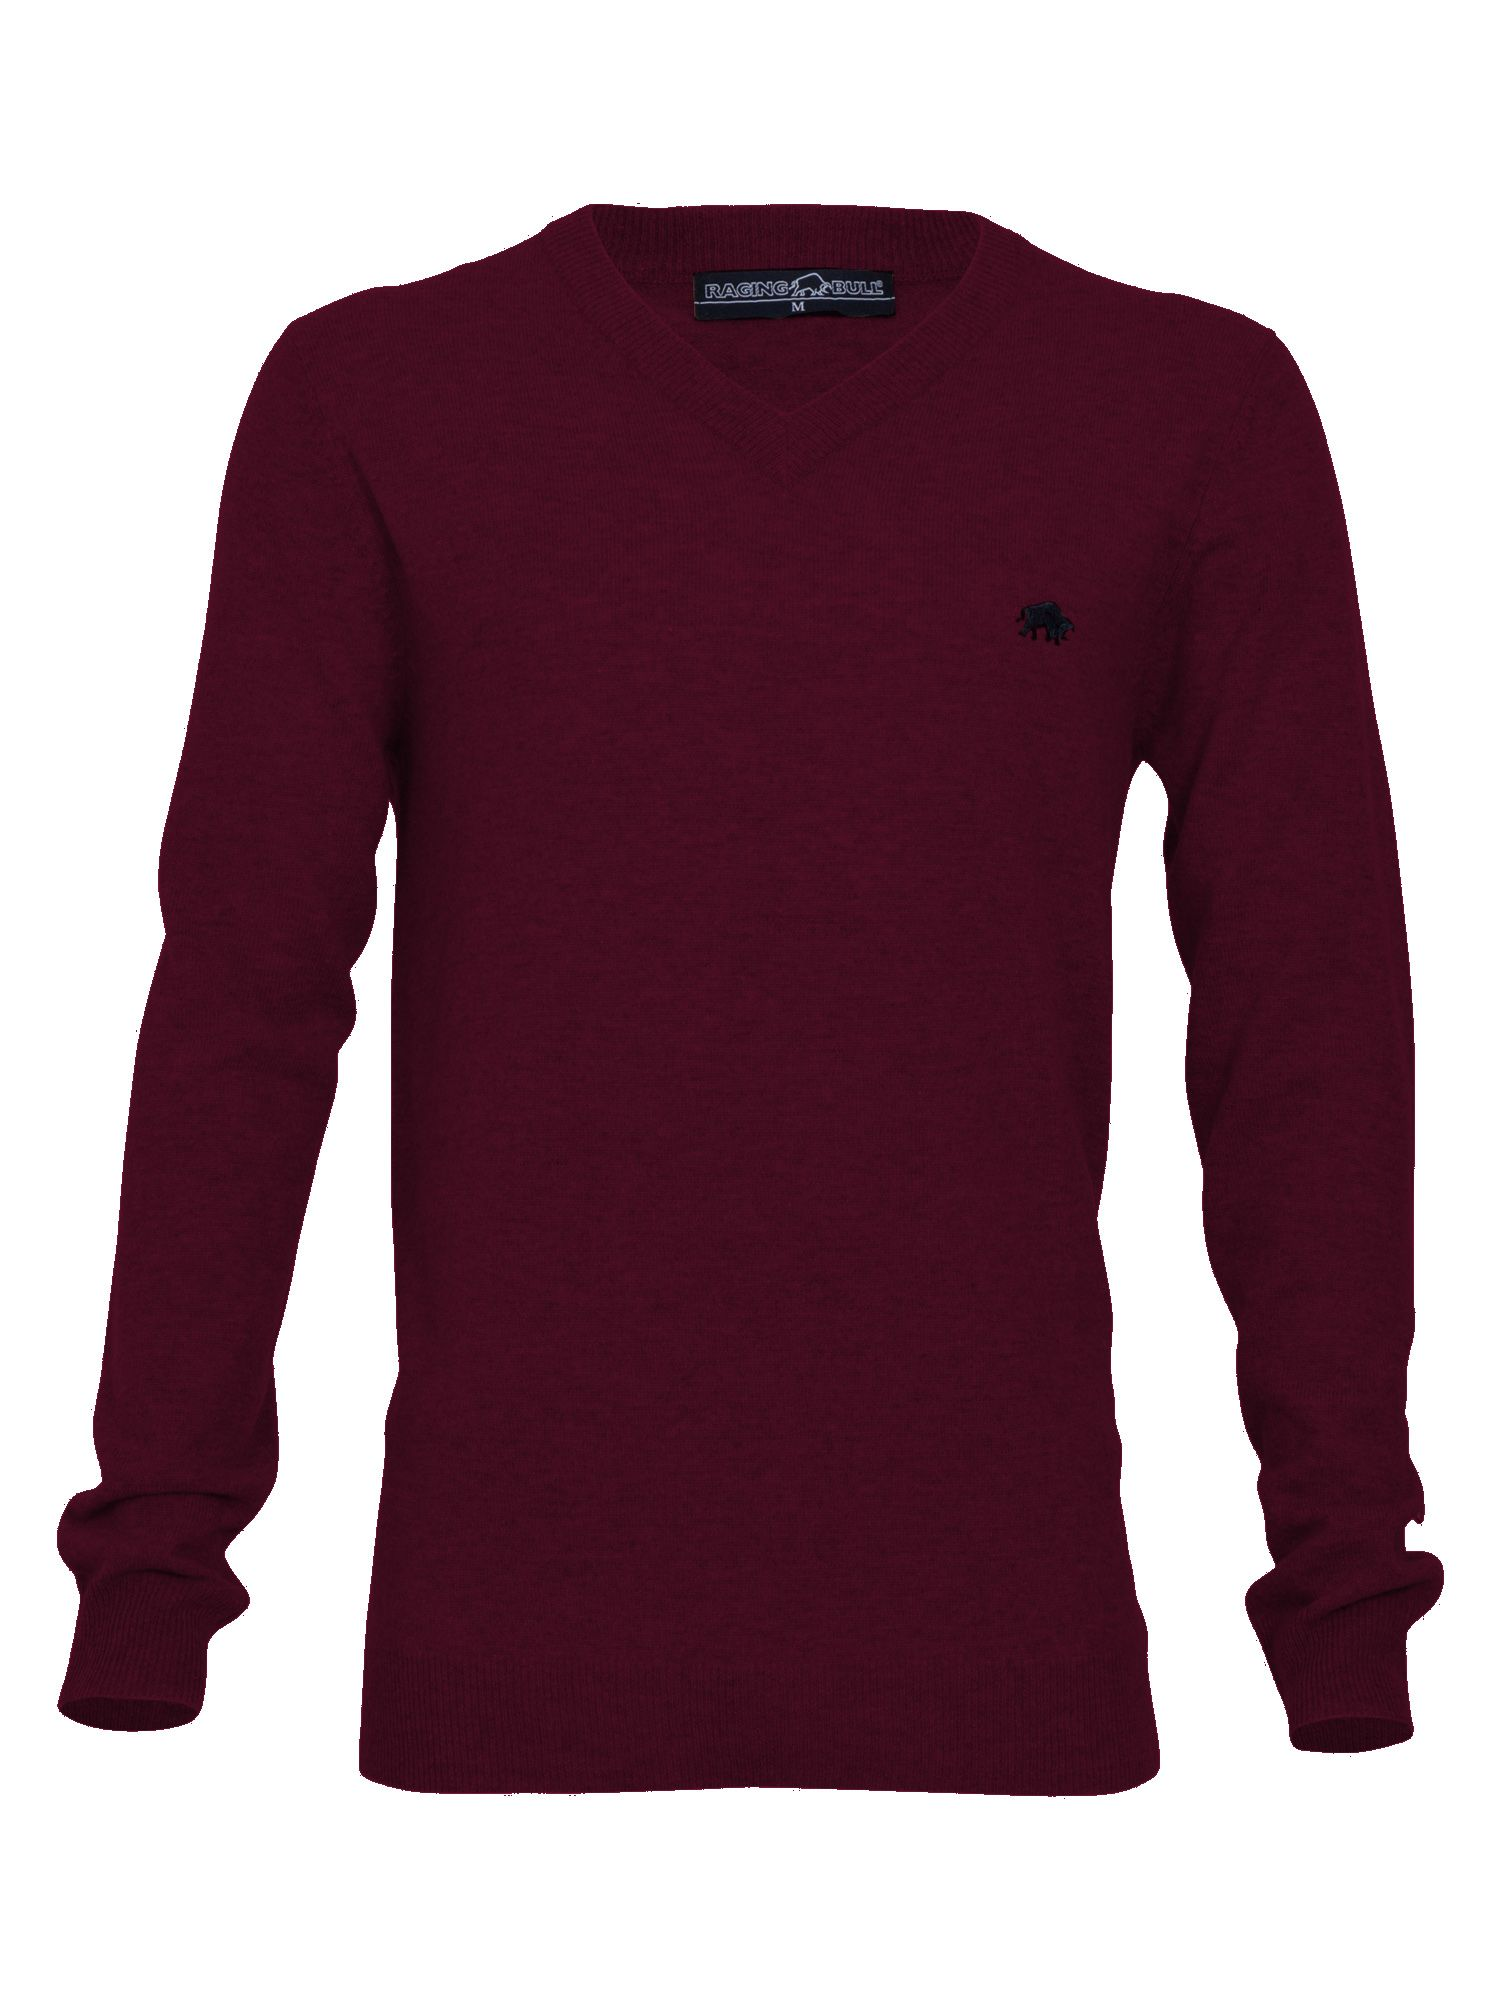 V-neck sweater claret